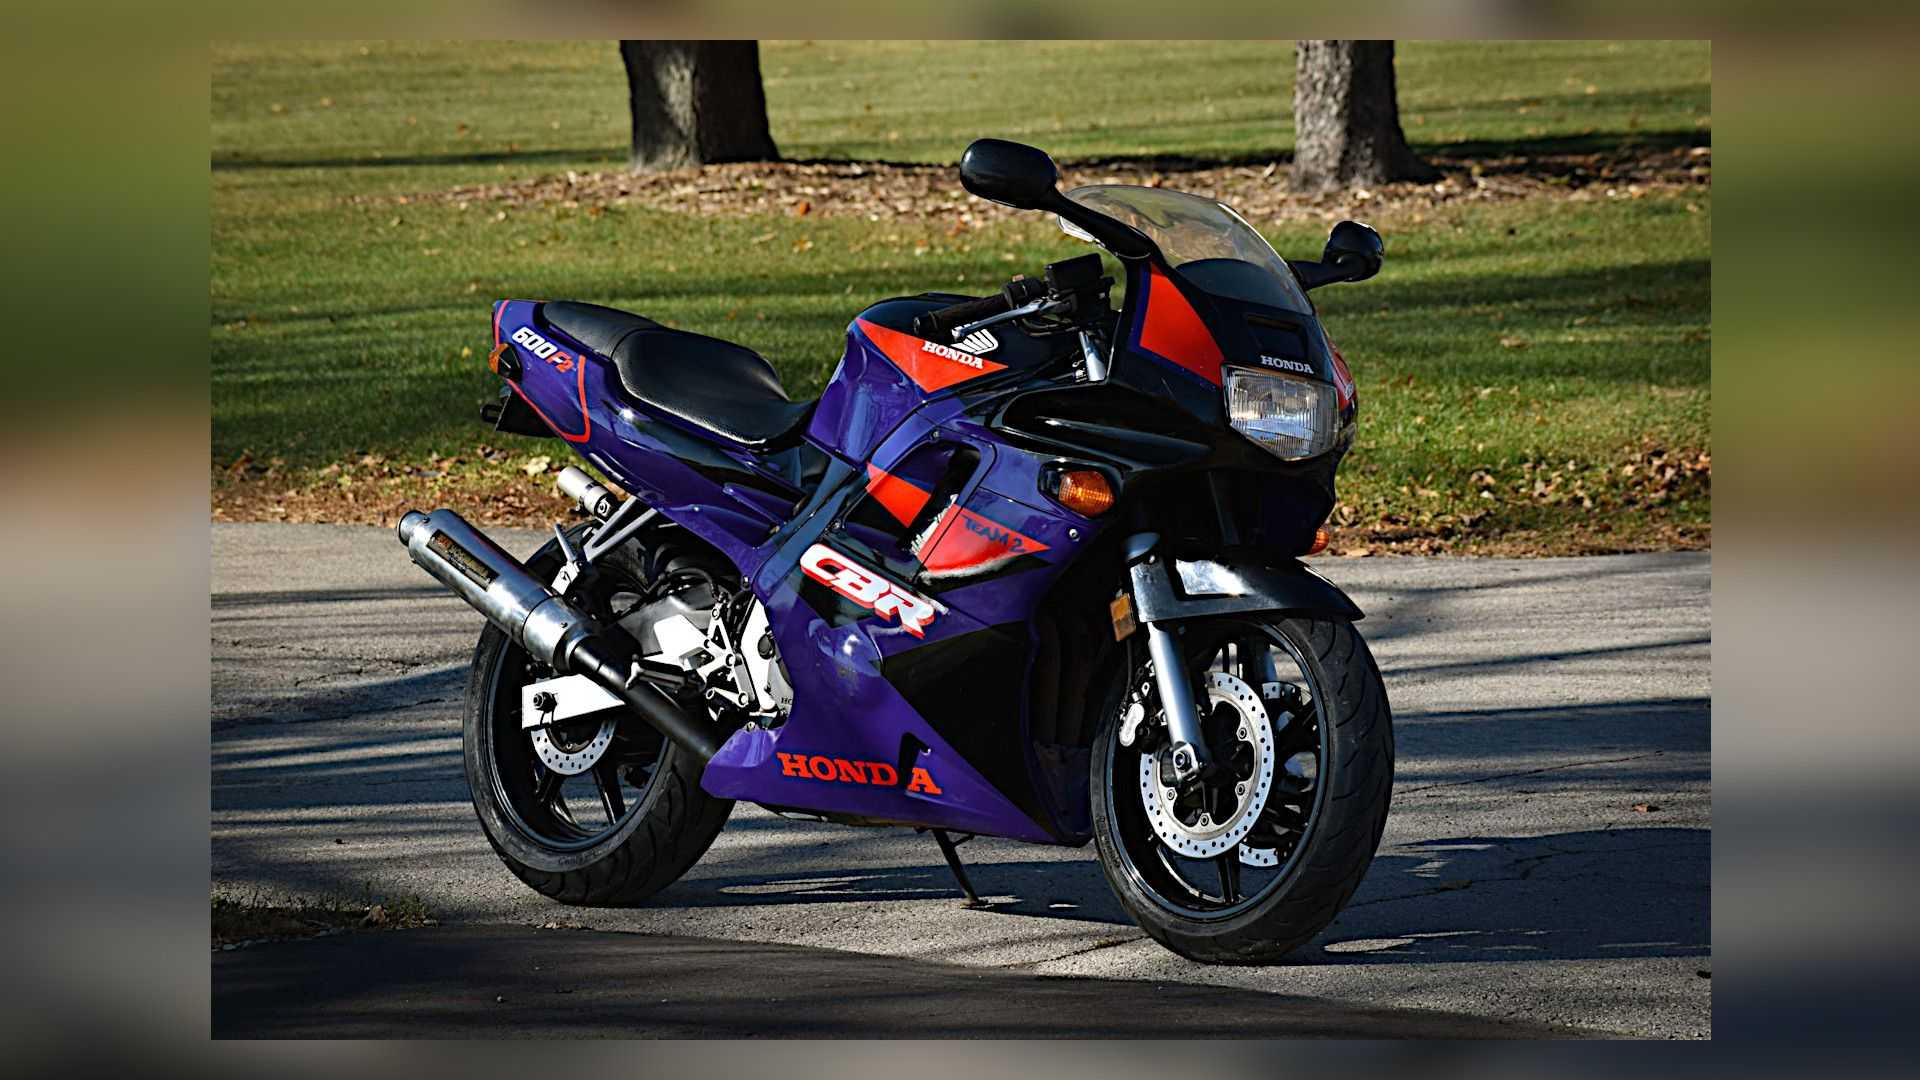 Feast Your Eyes On This Lovely 1994 Honda Cbr600 F2